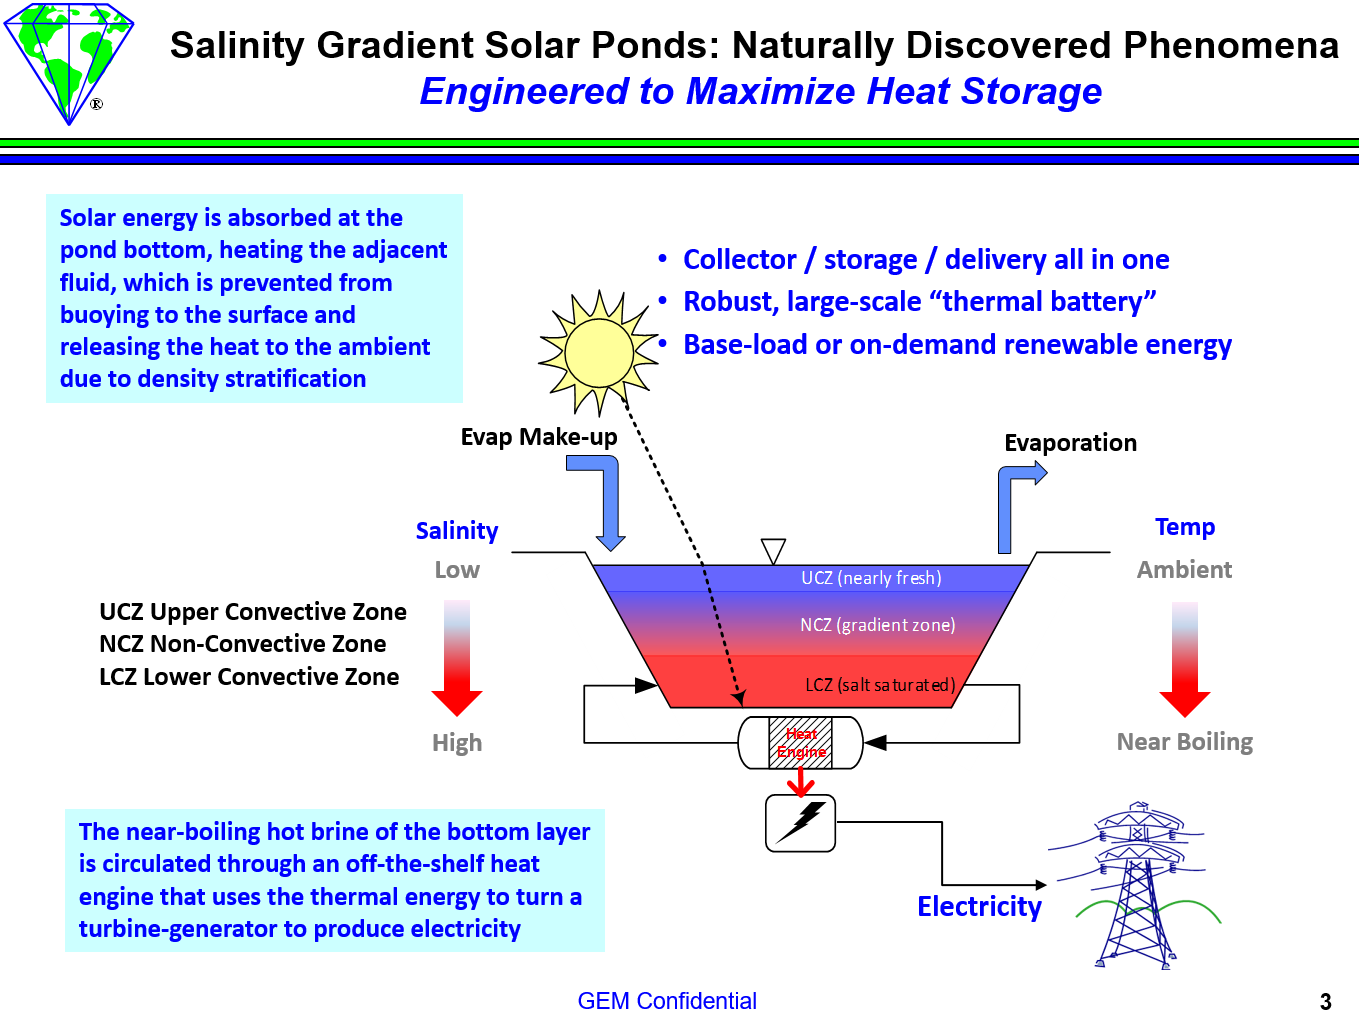 "salt gradient solar pond thesis Mr mazidi, mohammad position: thesis: the thermal simulation of a salt-gradient solar ""the thermal simulation of a salt-gradient solar pond""."